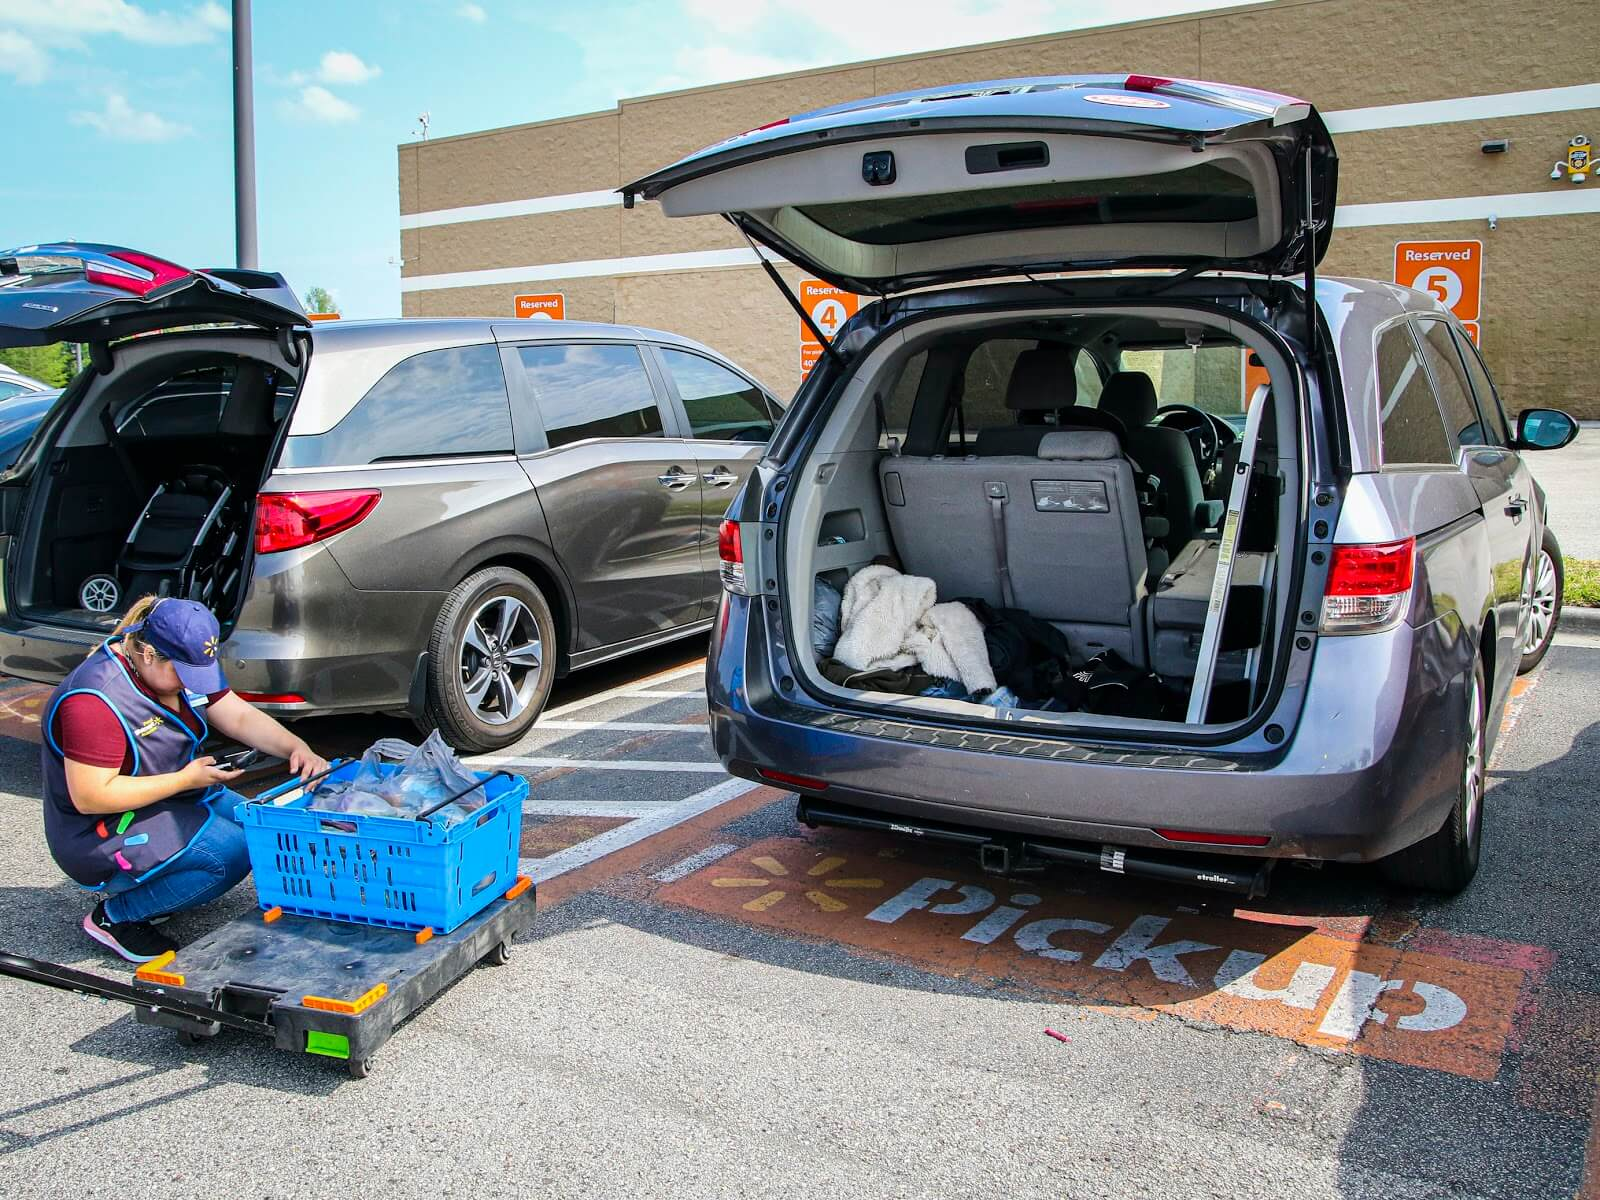 BOPIS retail: as shown here at Walmart with an employee loading up two mini-vans with BOPIS groceries.